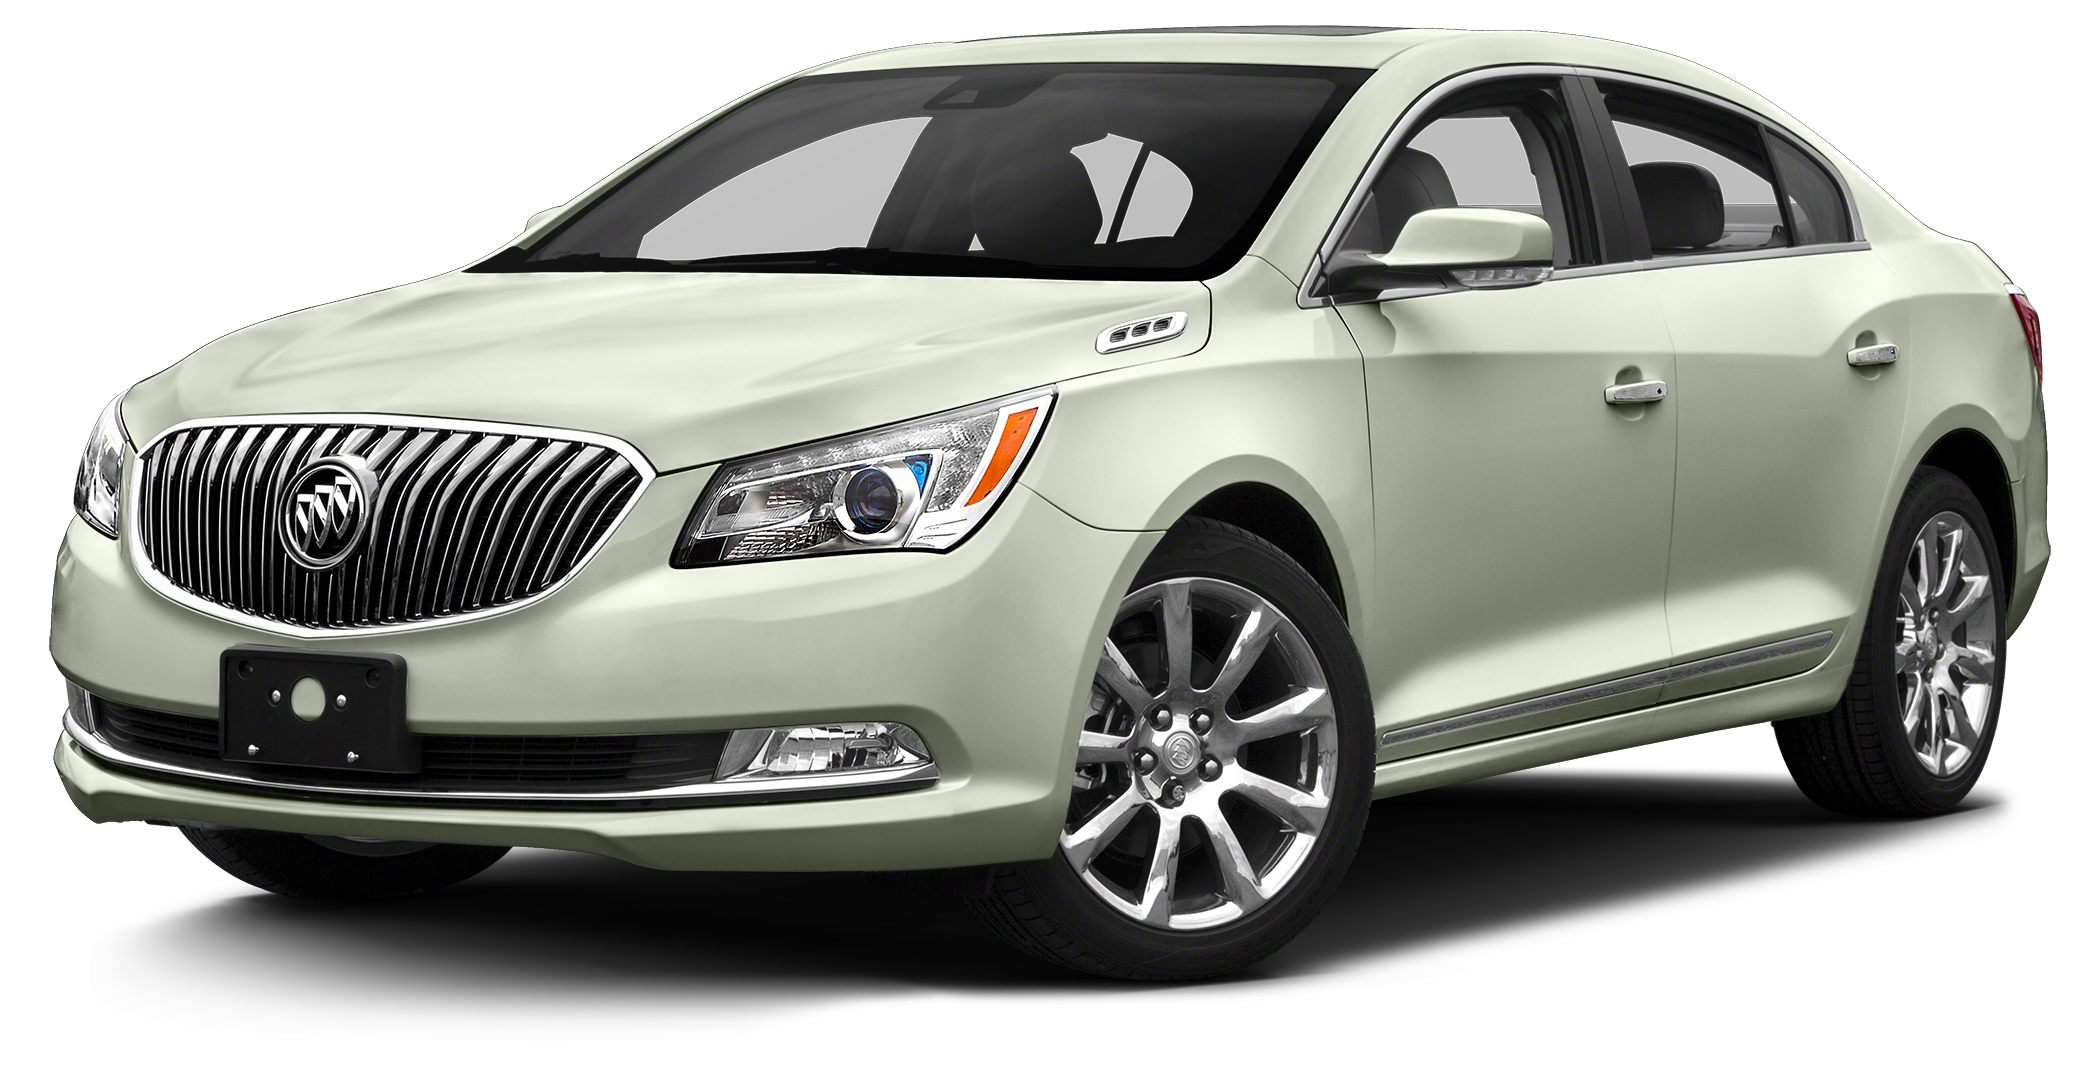 2016 Buick LaCrosse Sport Touring The 2016 Buick LaCrosse is designed to meet your every need You